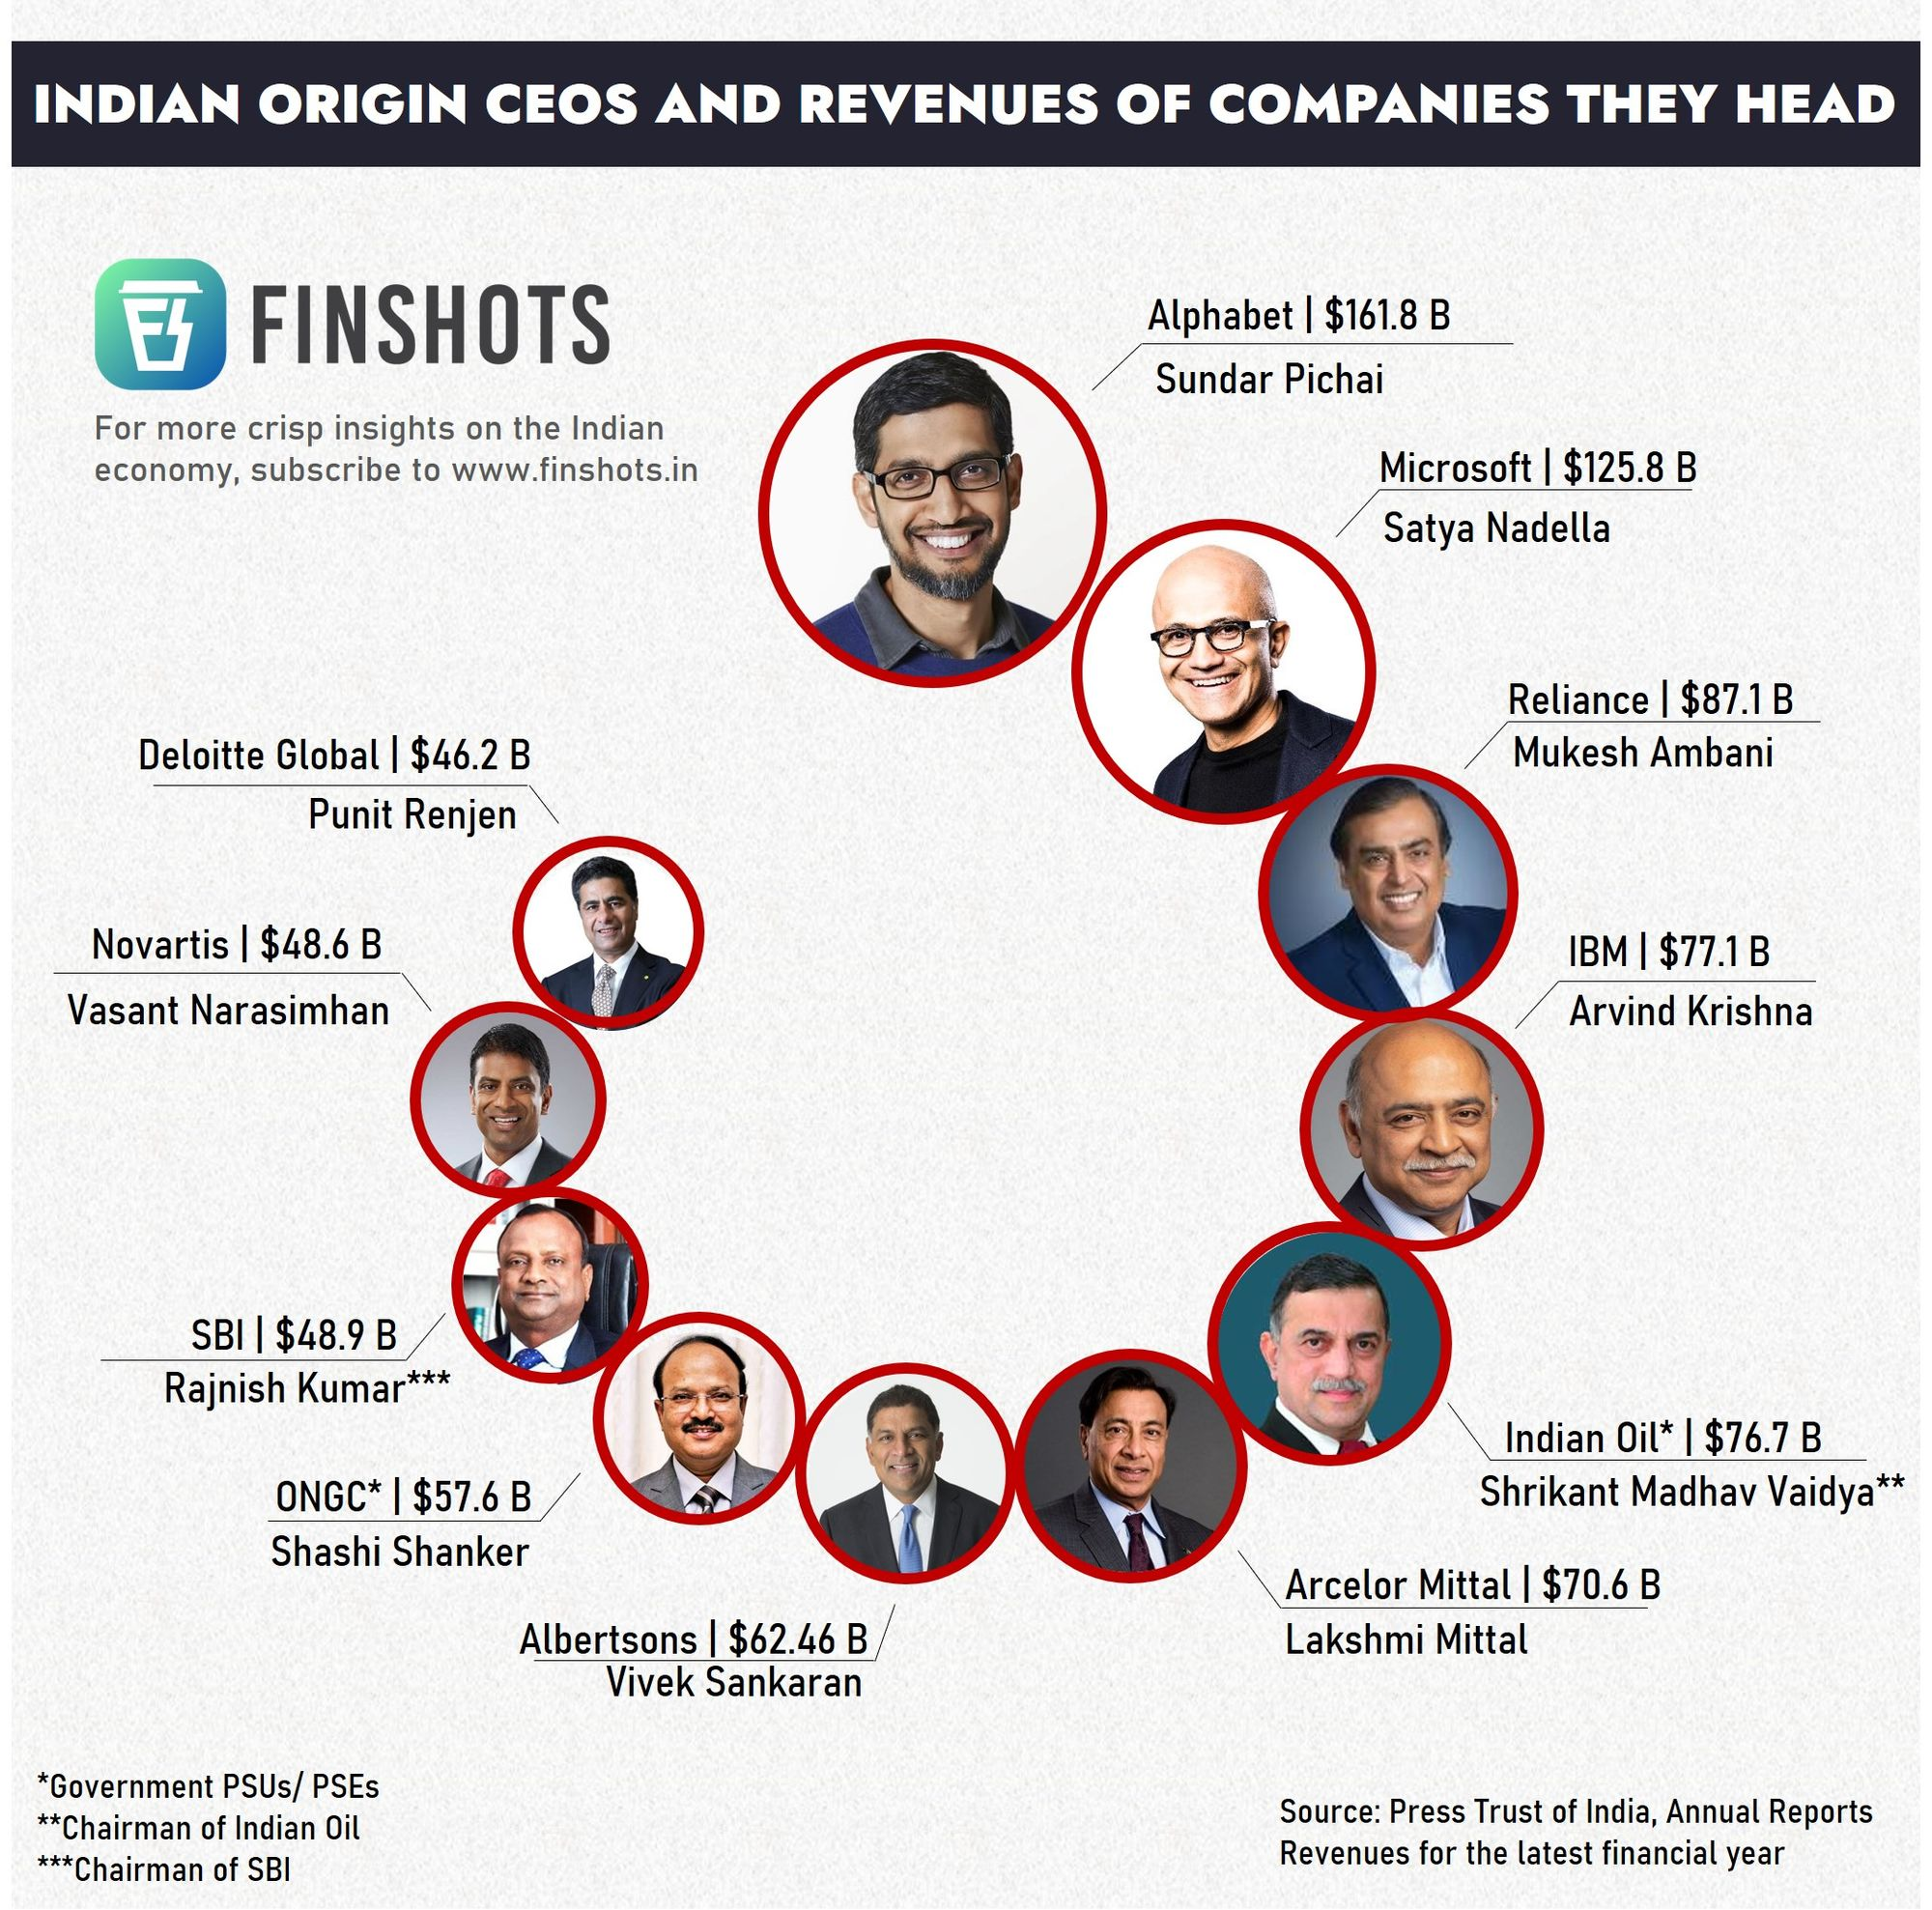 Indian origin CEOs and revenues of companies they head